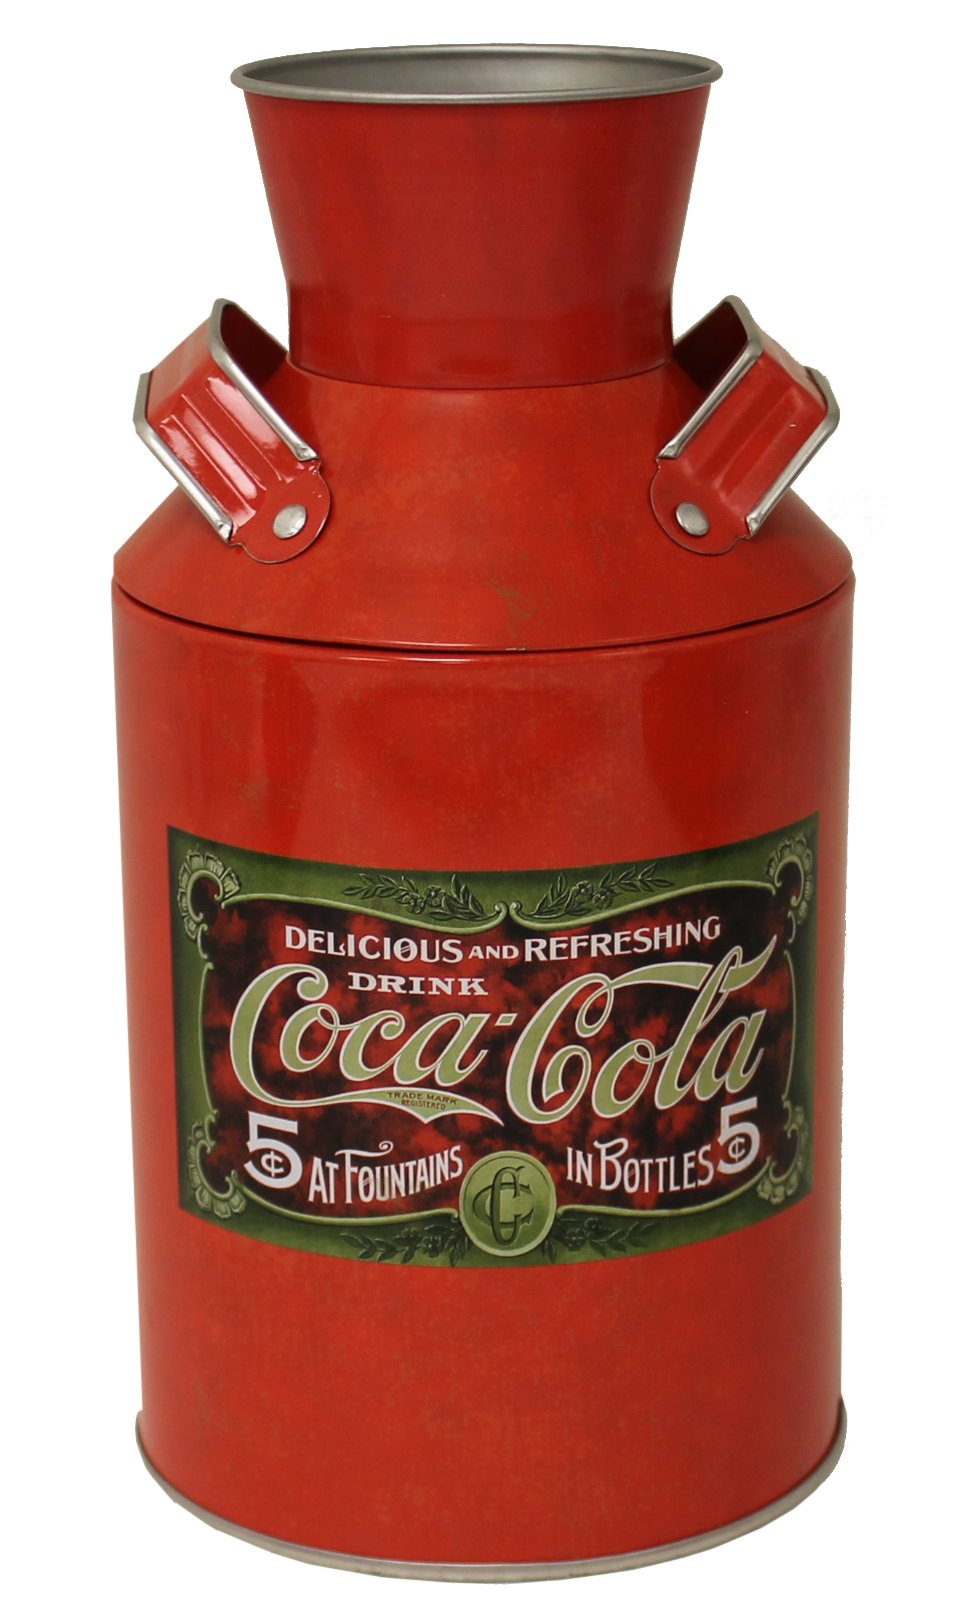 Buy Vintage Coke Cans Now!